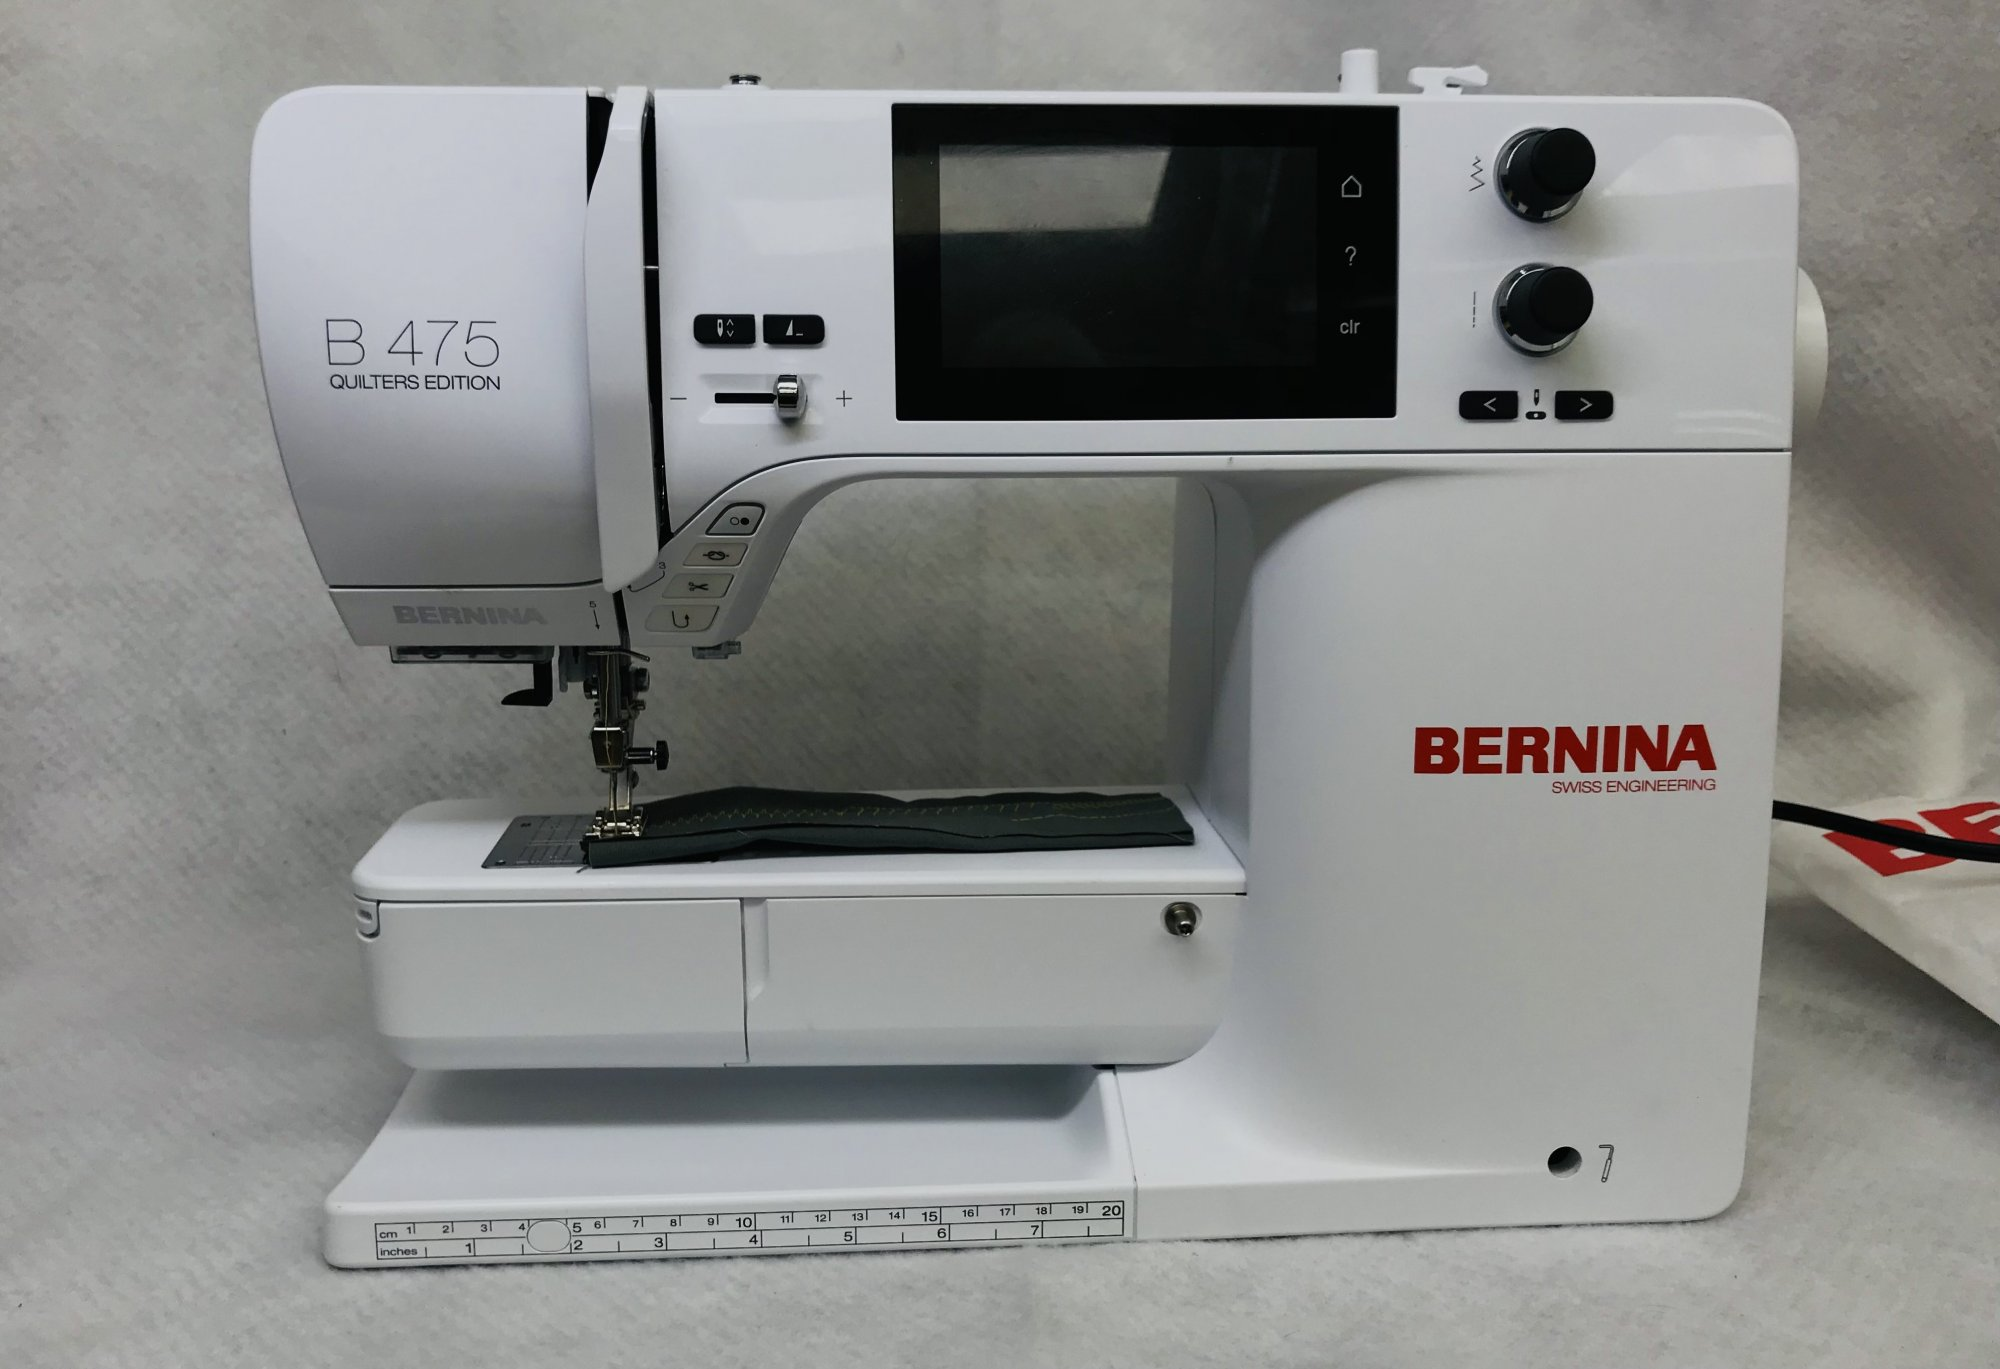 Trade In Bernina B475 Quilters Edition #61112504